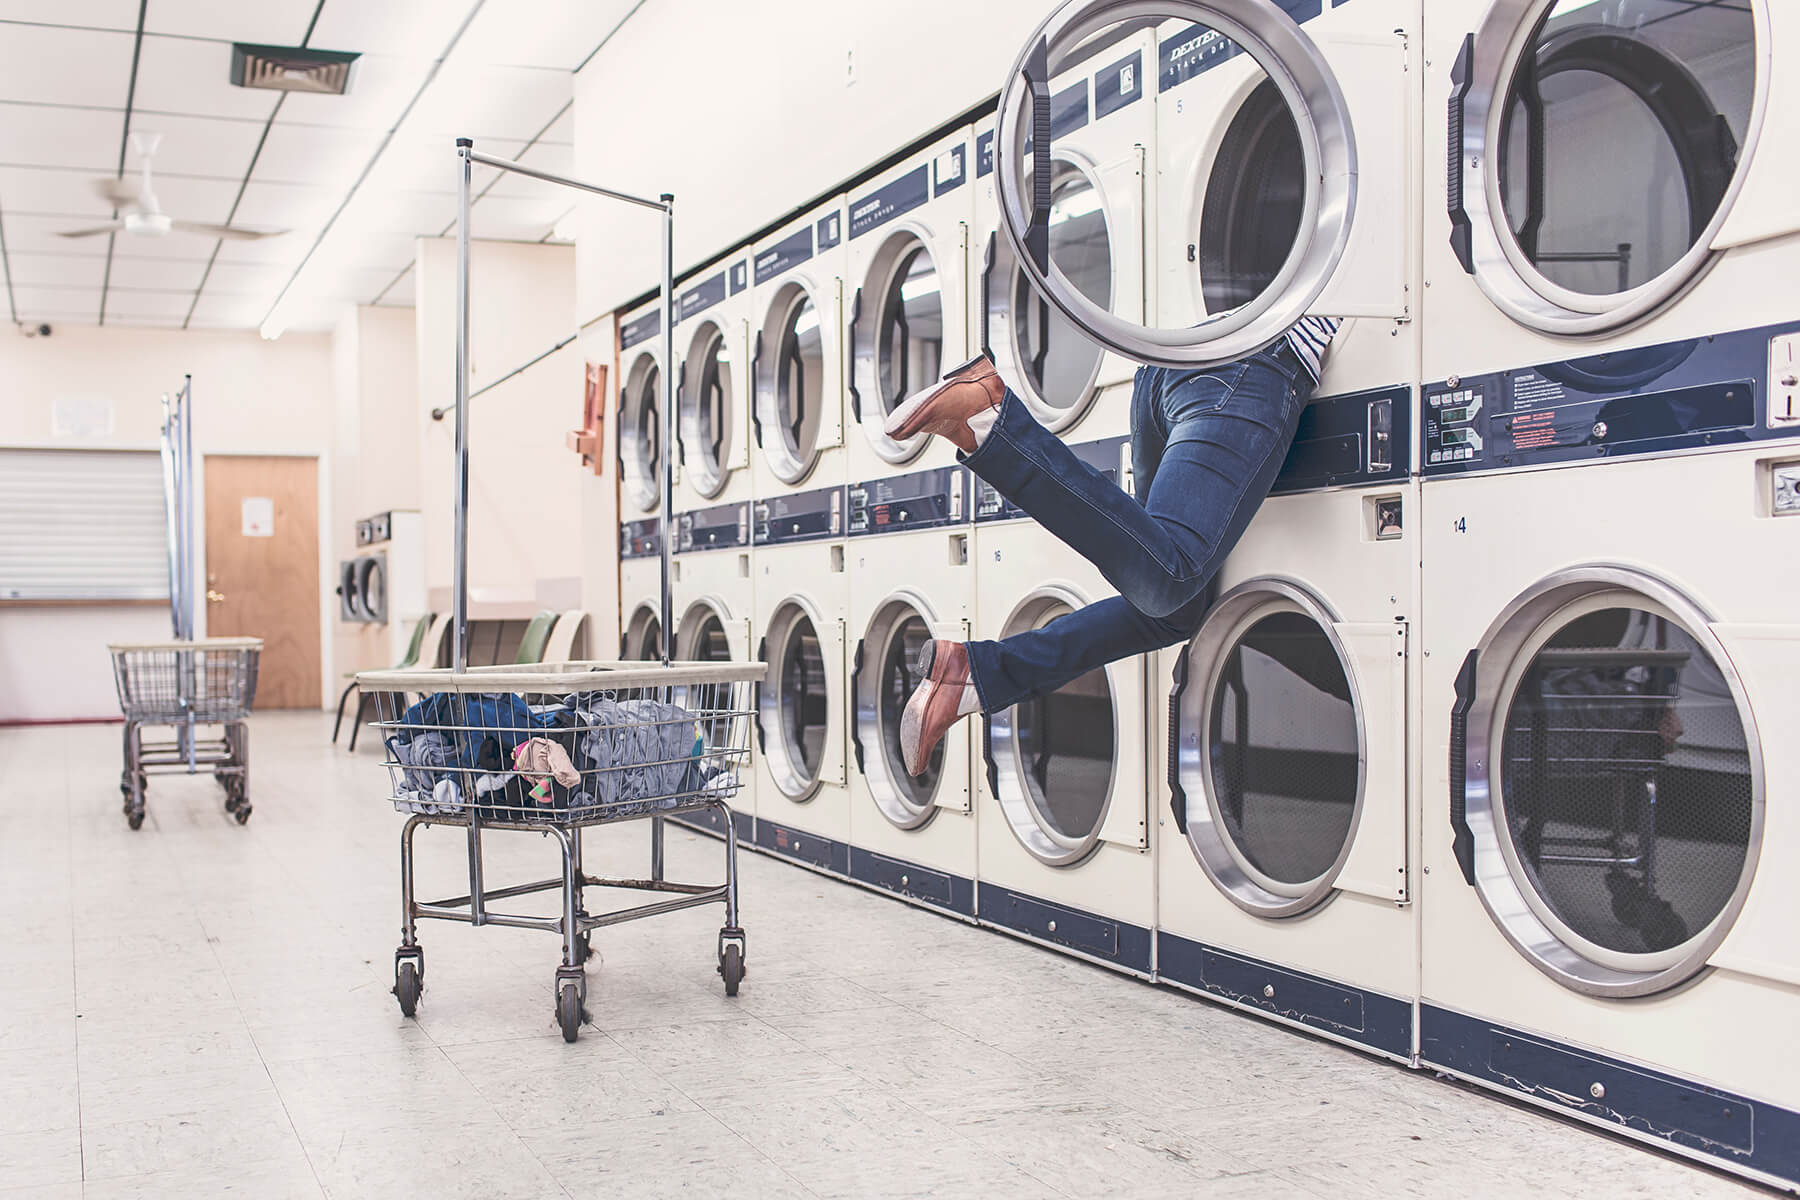 5 Surprising Things You Never Knew You Could Put In The Washing Machine